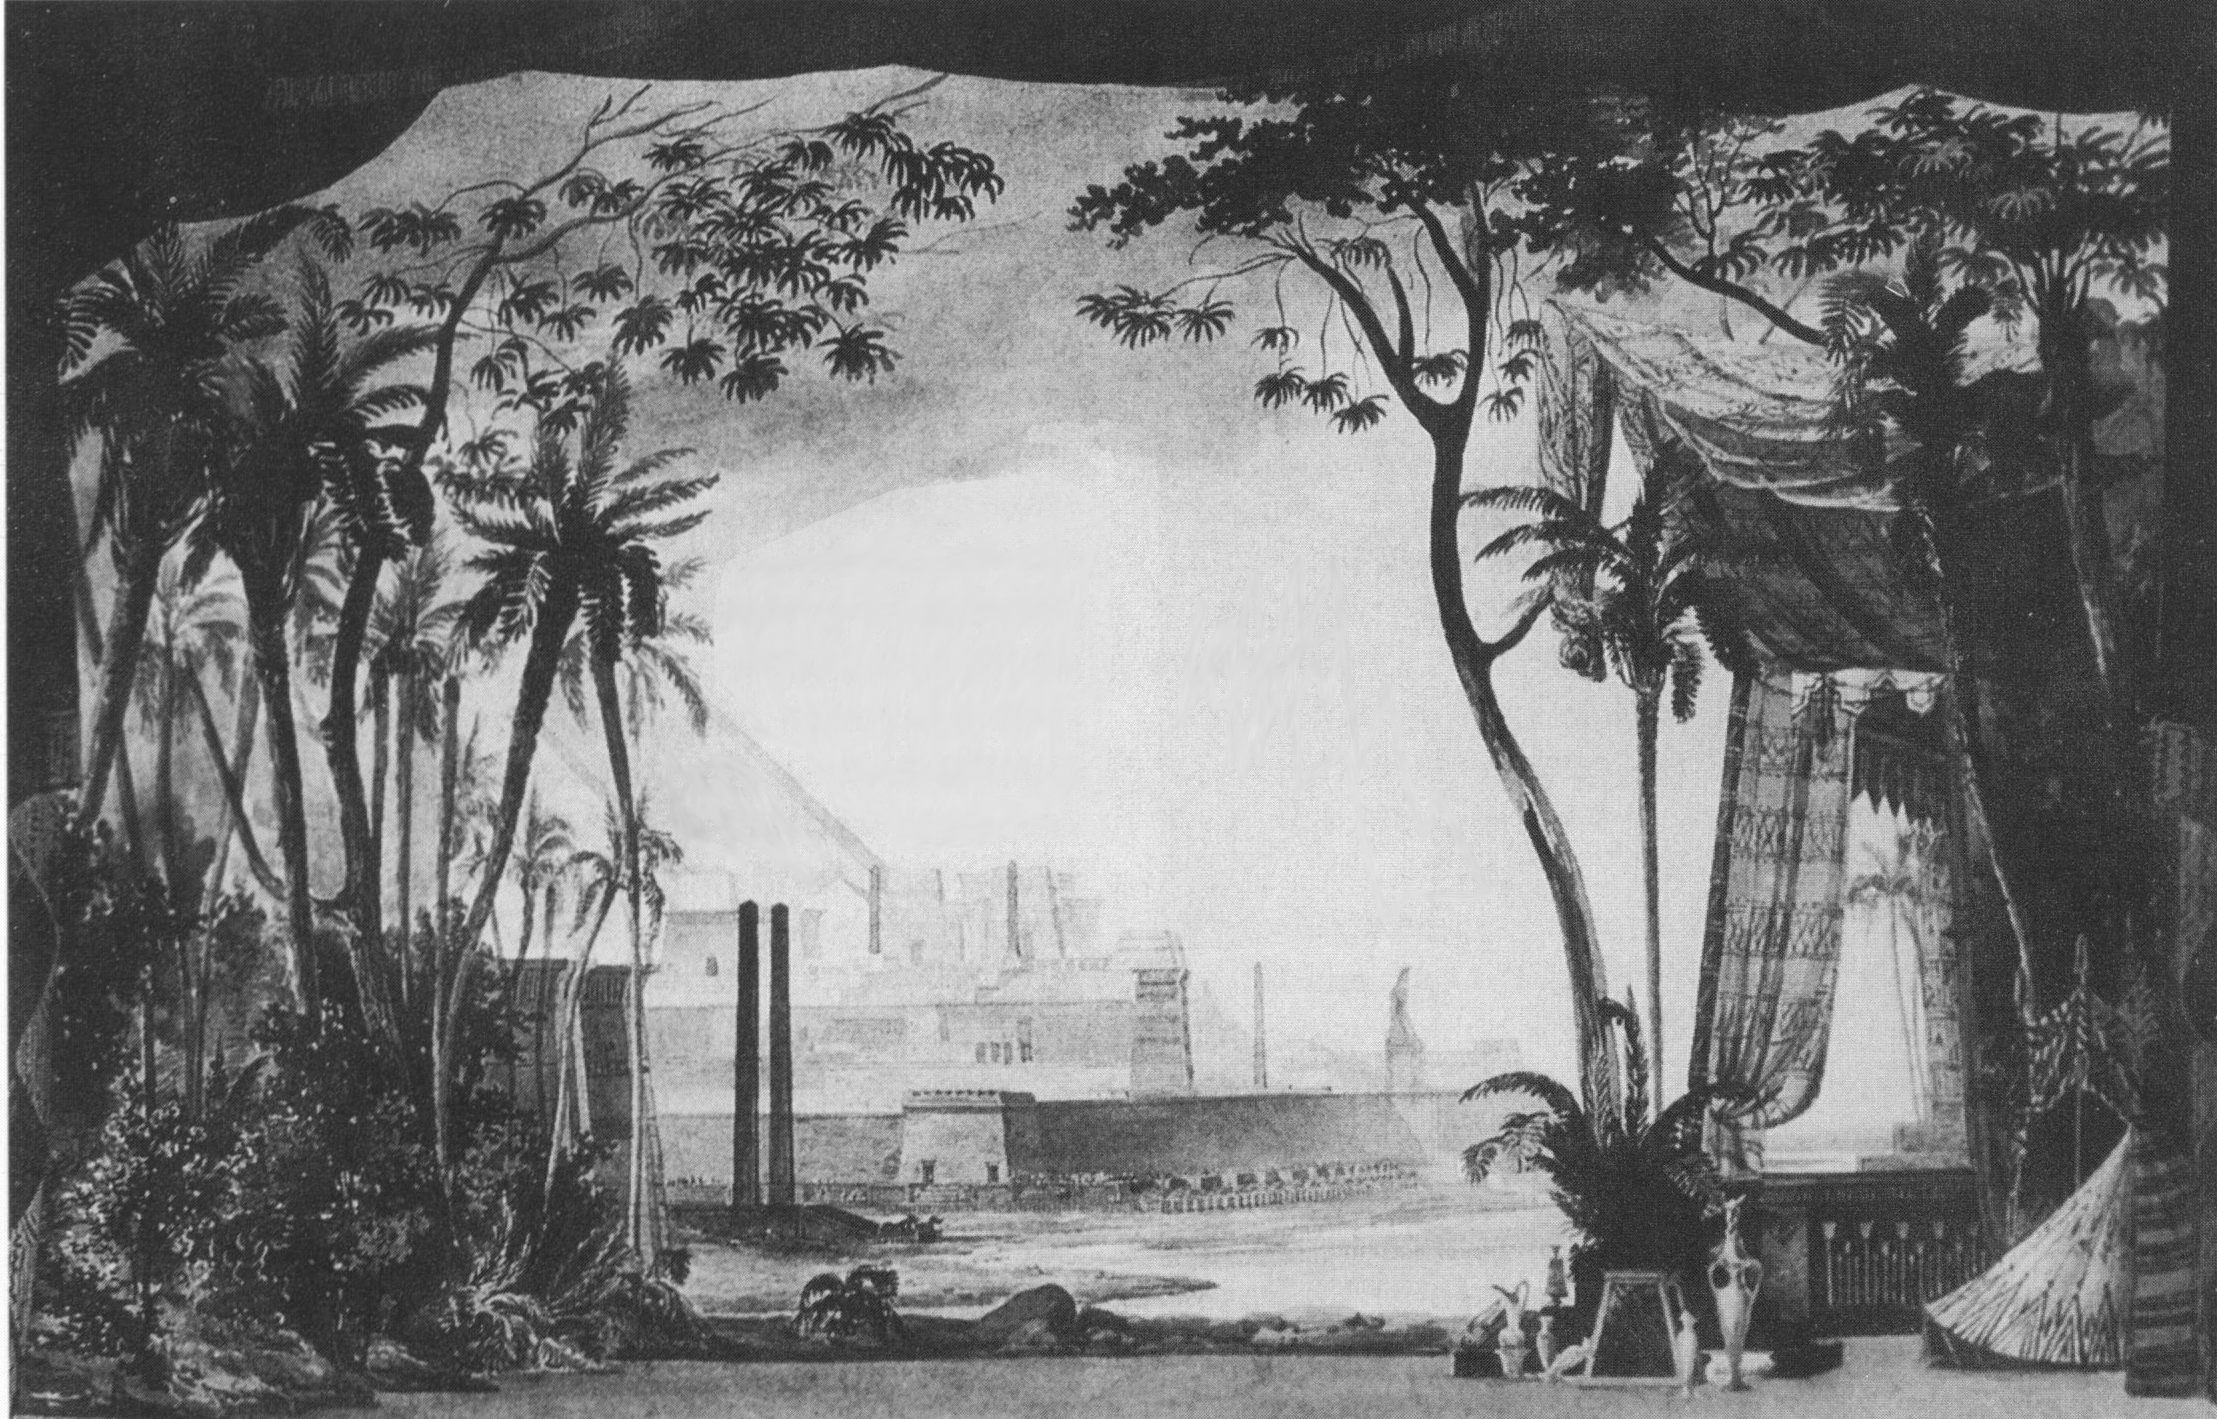 Filerossini moïse et pharaon 1 scene engraving by auguste caron after drafts by pierre cicéri opéra paris 1827 png